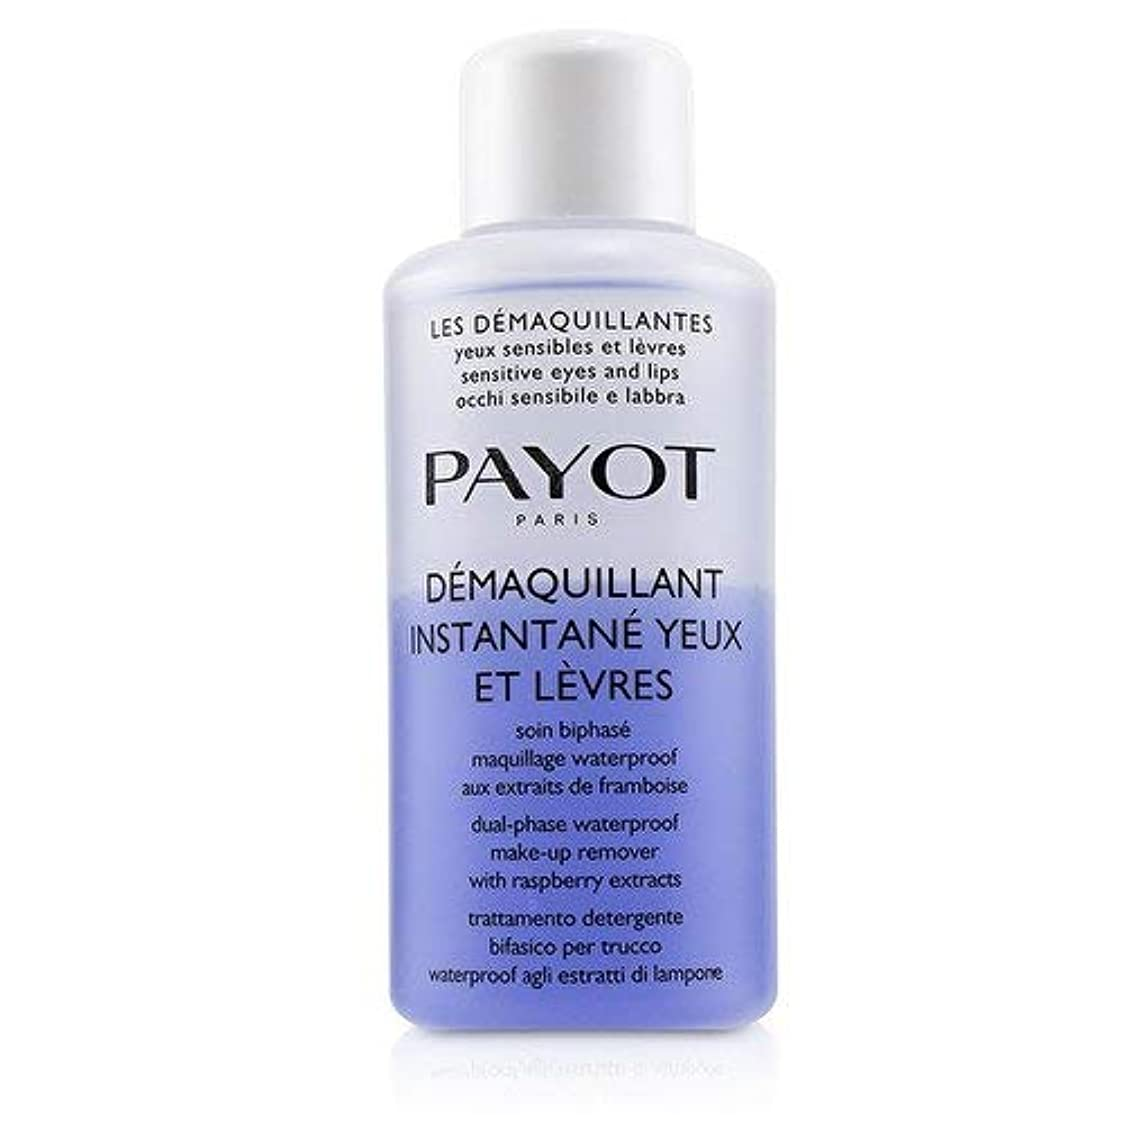 治世考古学的な脇にパイヨ Les Demaquillantes Demaquillant Instantane Yeux Dual-Phase Waterproof Make-Up Remover - For Sensitive Eyes...